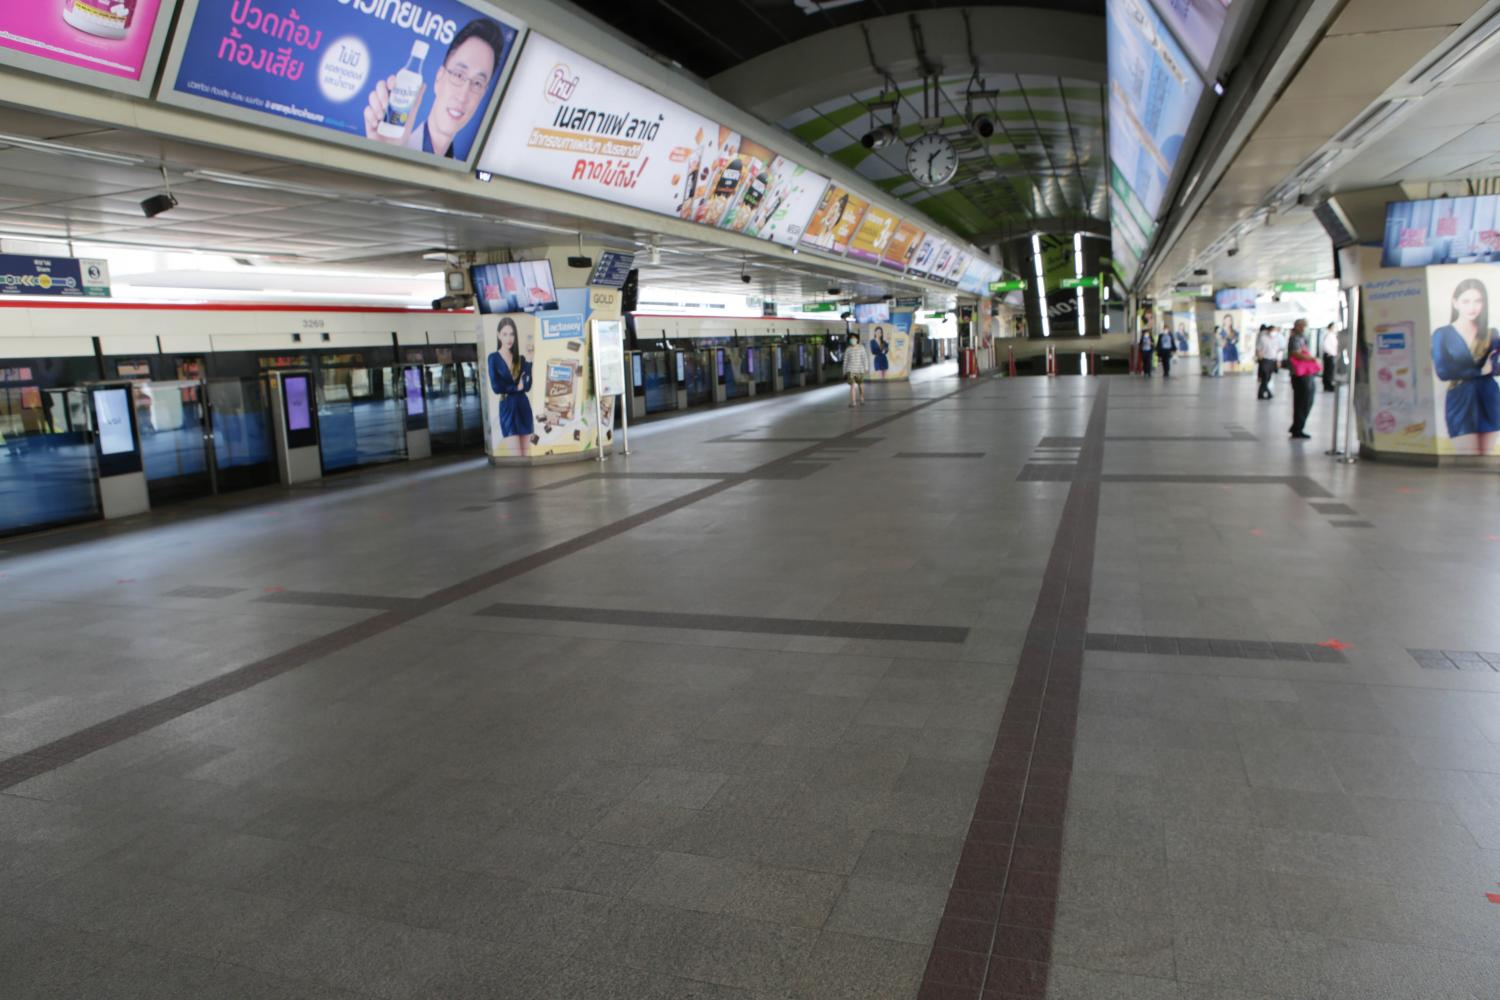 Siam skytrain station, usually one of Bangkok's busiest mass transit interchanges, has been nearly empty since shopping malls and hotels closed temporarily this week.(Photo by Apichit Jinakul)